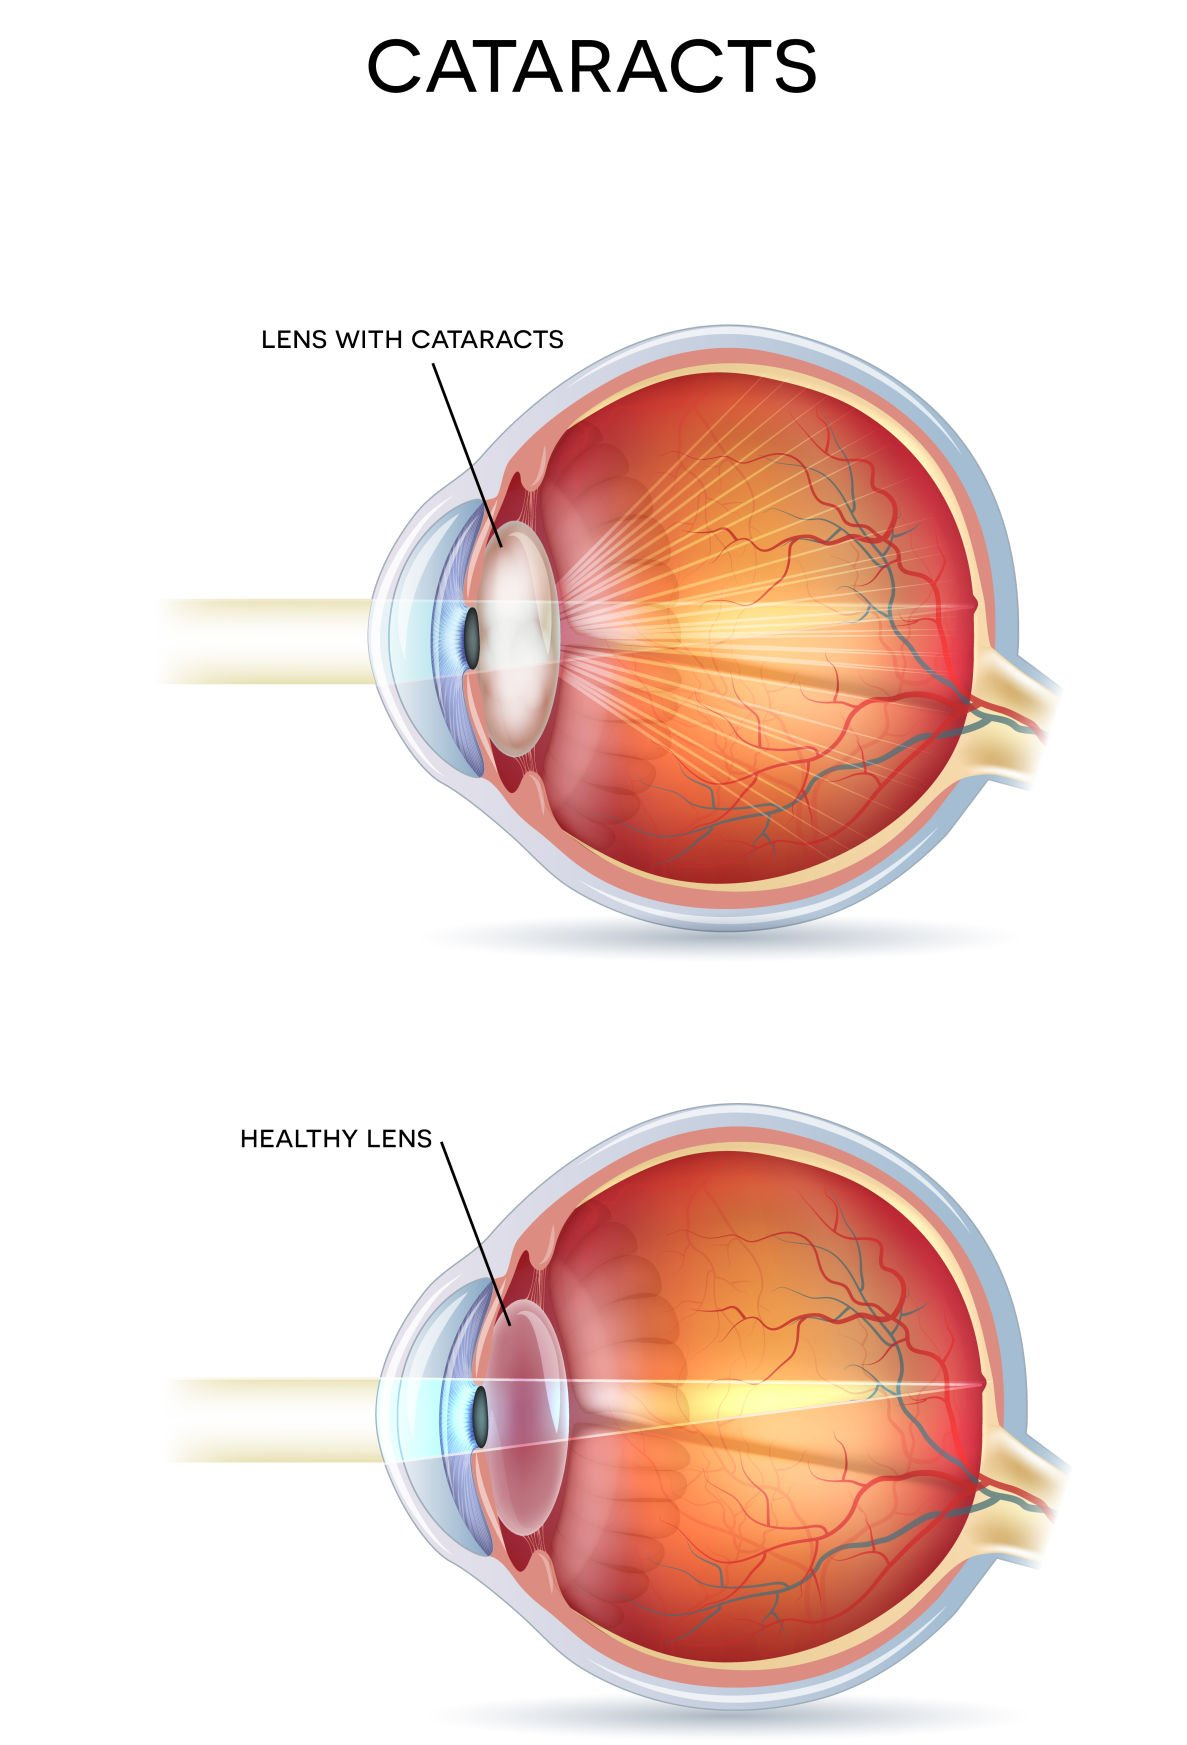 The miracle of modern cataract surgery